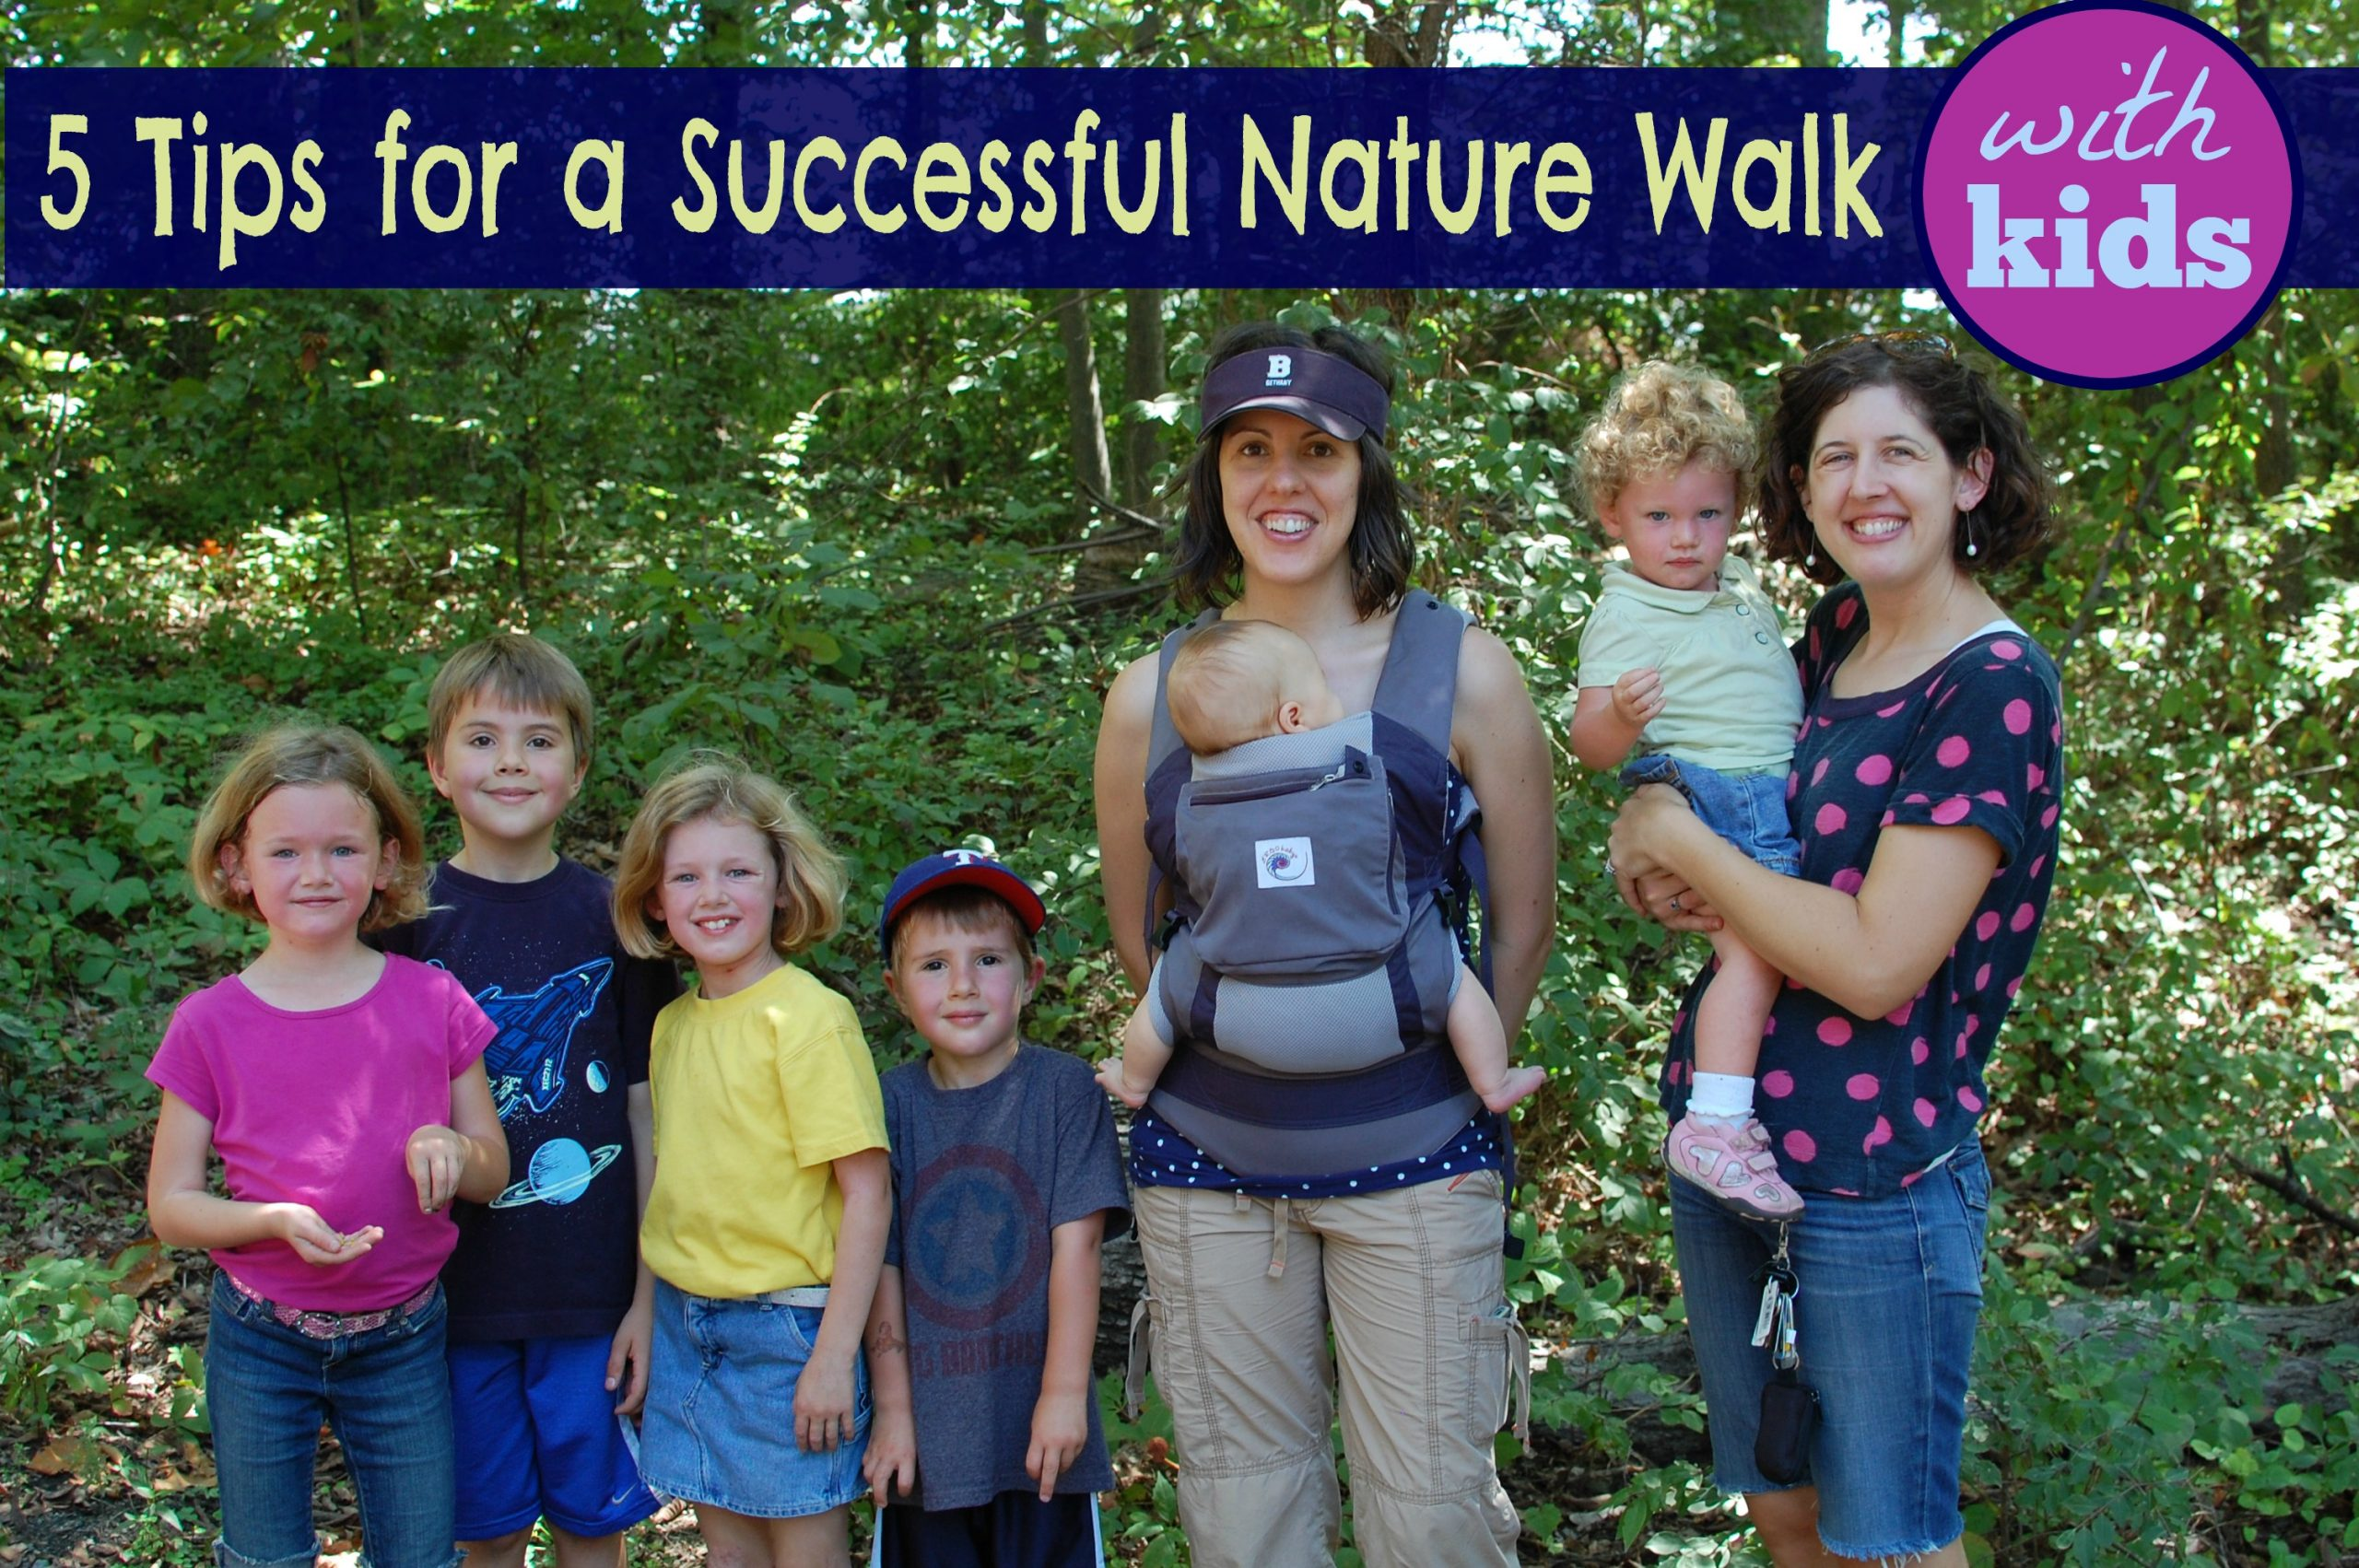 5 Tips for a Successful Nature Walk with Kids